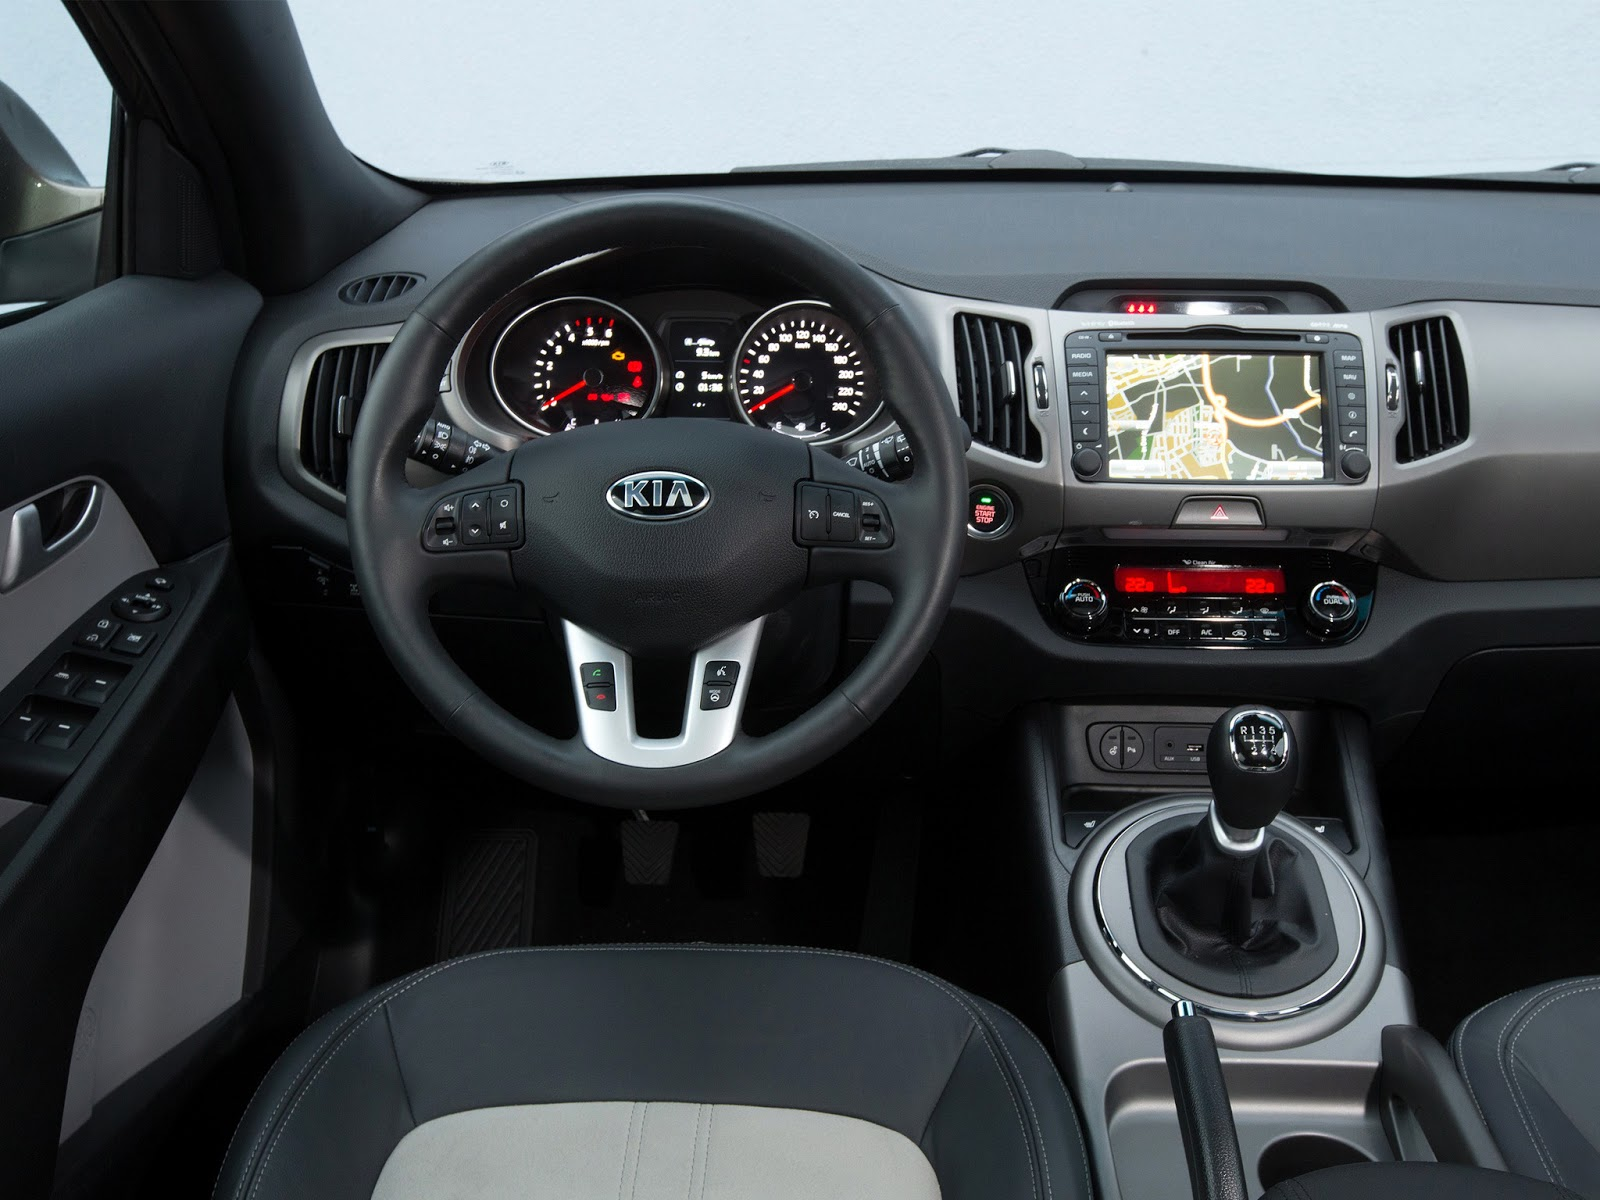 amusing-design-of-the-black-seats-ideas-with-grey-accents-as-the-kia-rio-2015-interior